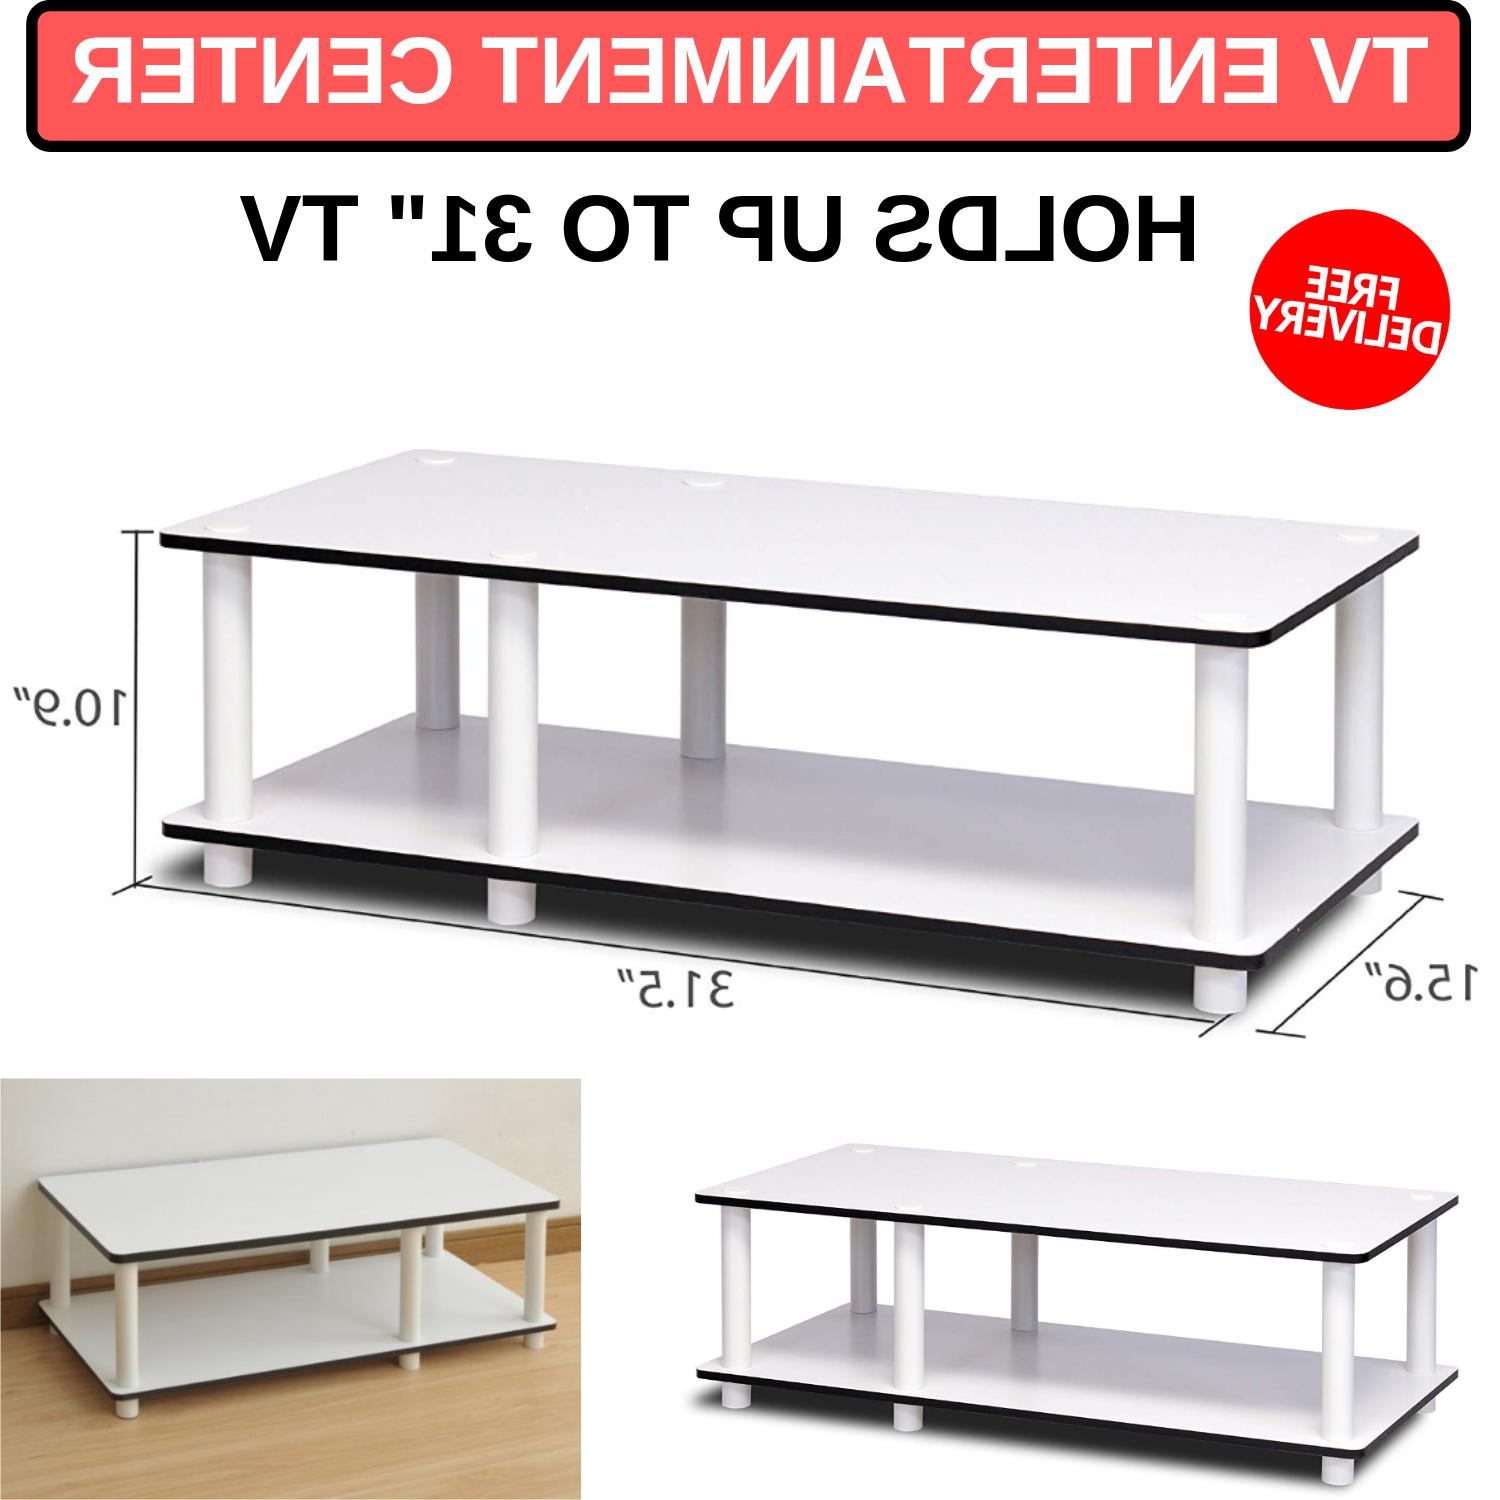 """Tv Entertainment Center Holds Up To 31"""" Flat Screen Panel Le"""